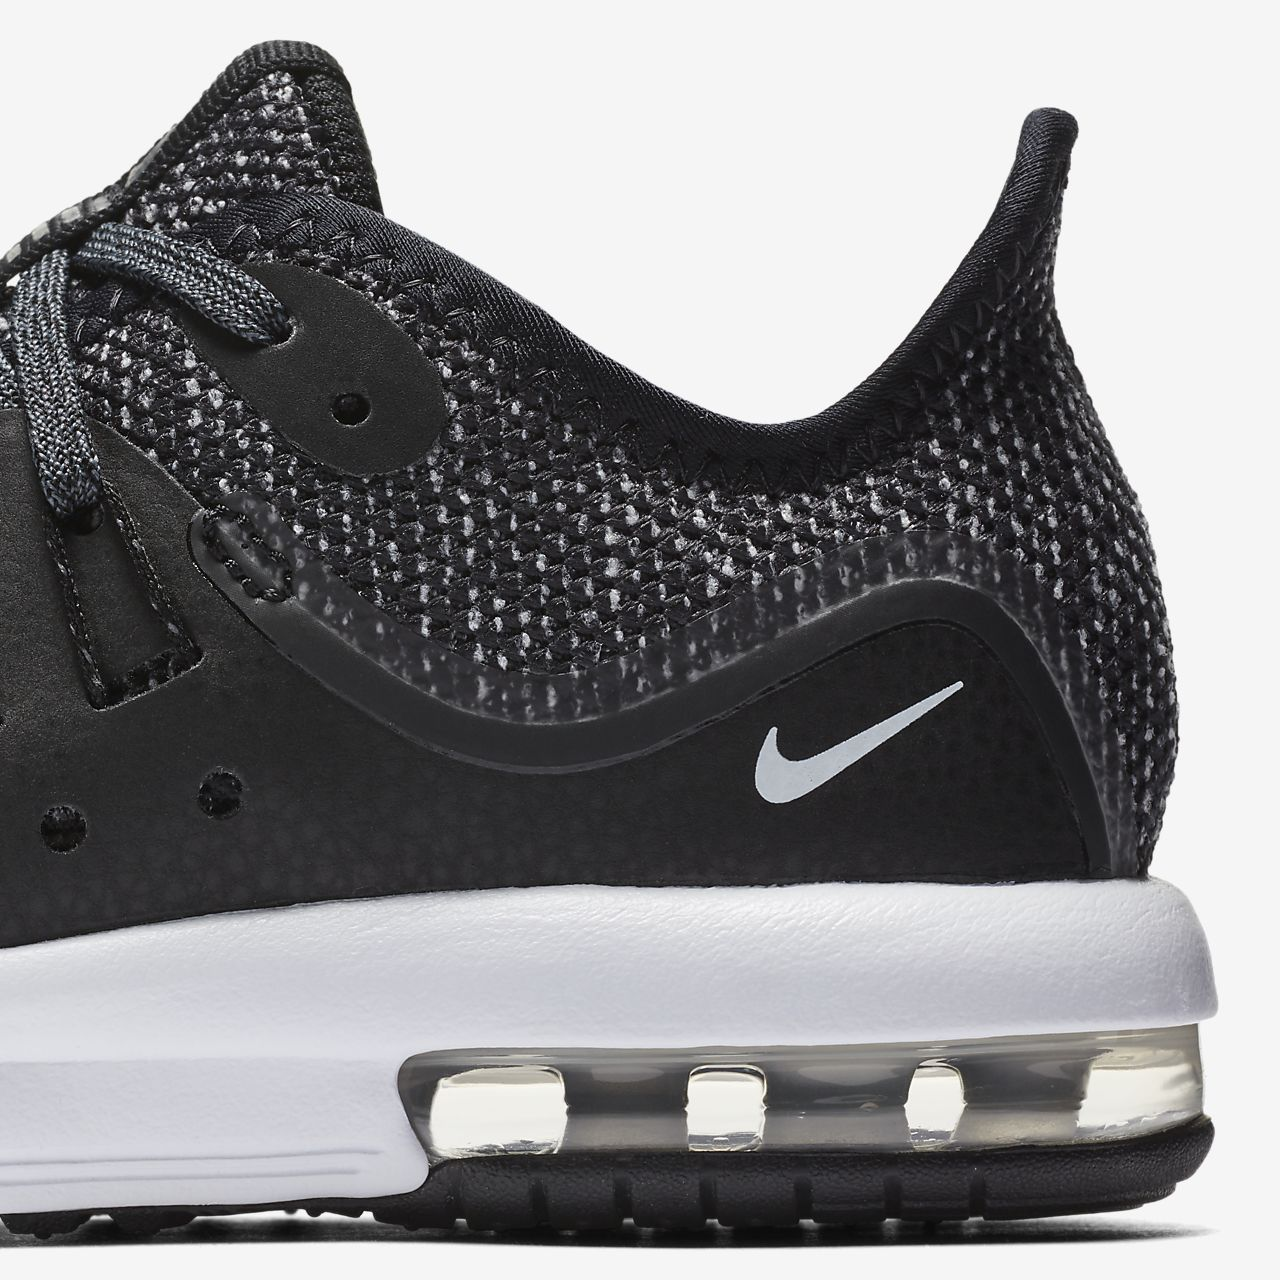 uk availability 37c11 75943 nike air max sequent 3 garcon